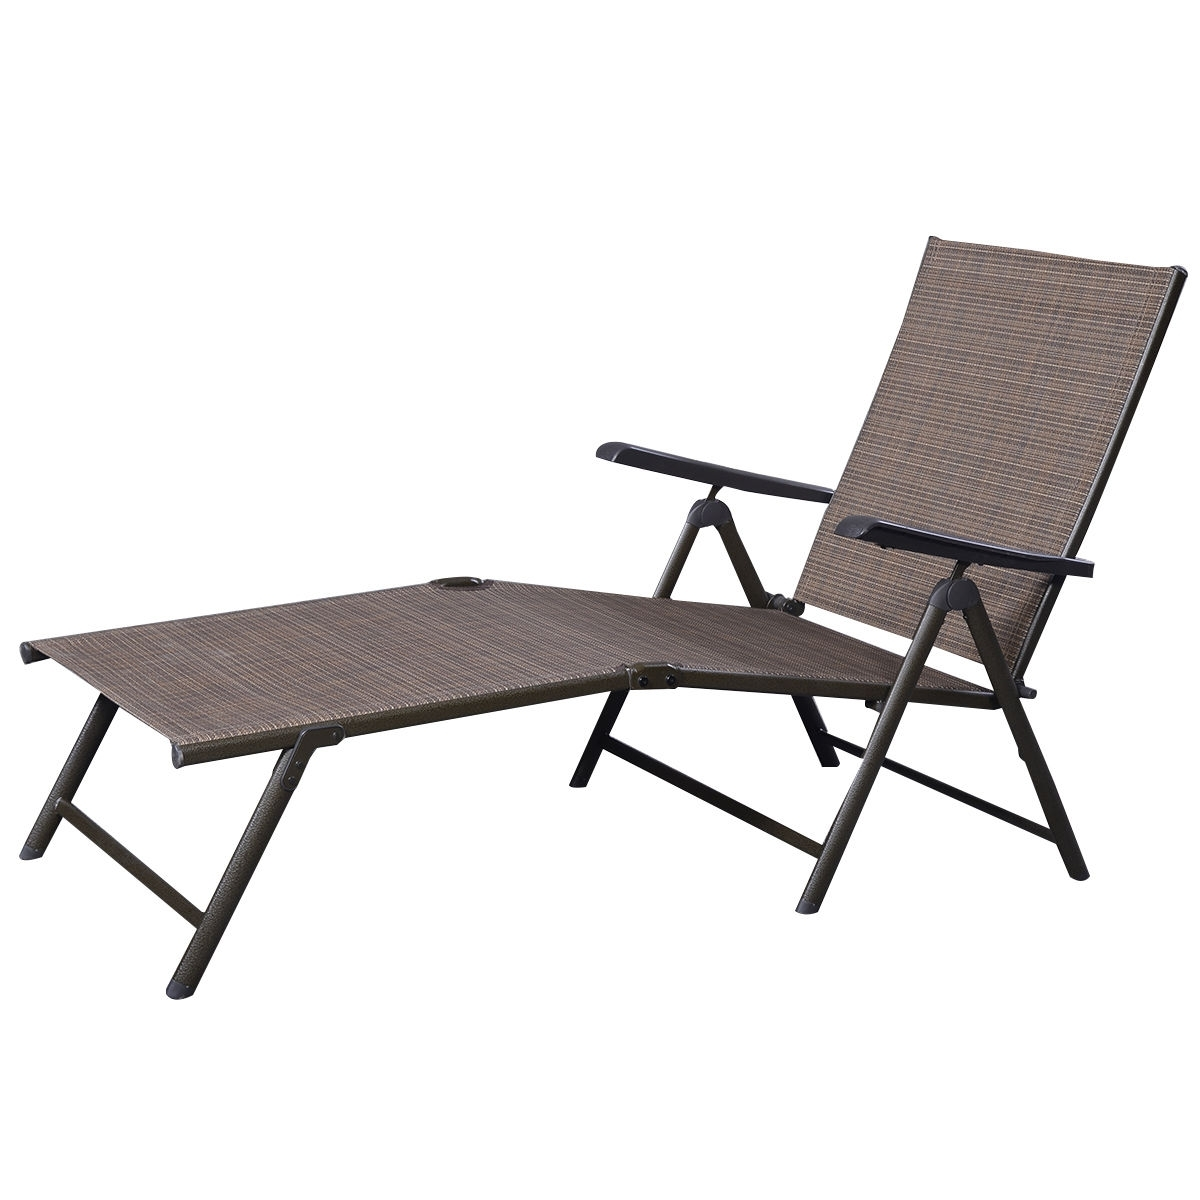 Trendy Adjustable Pool Chaise Lounge Chair Recliners with Outdoor Adjustable Chaise Lounge Chair - Sunloungers - Outdoor